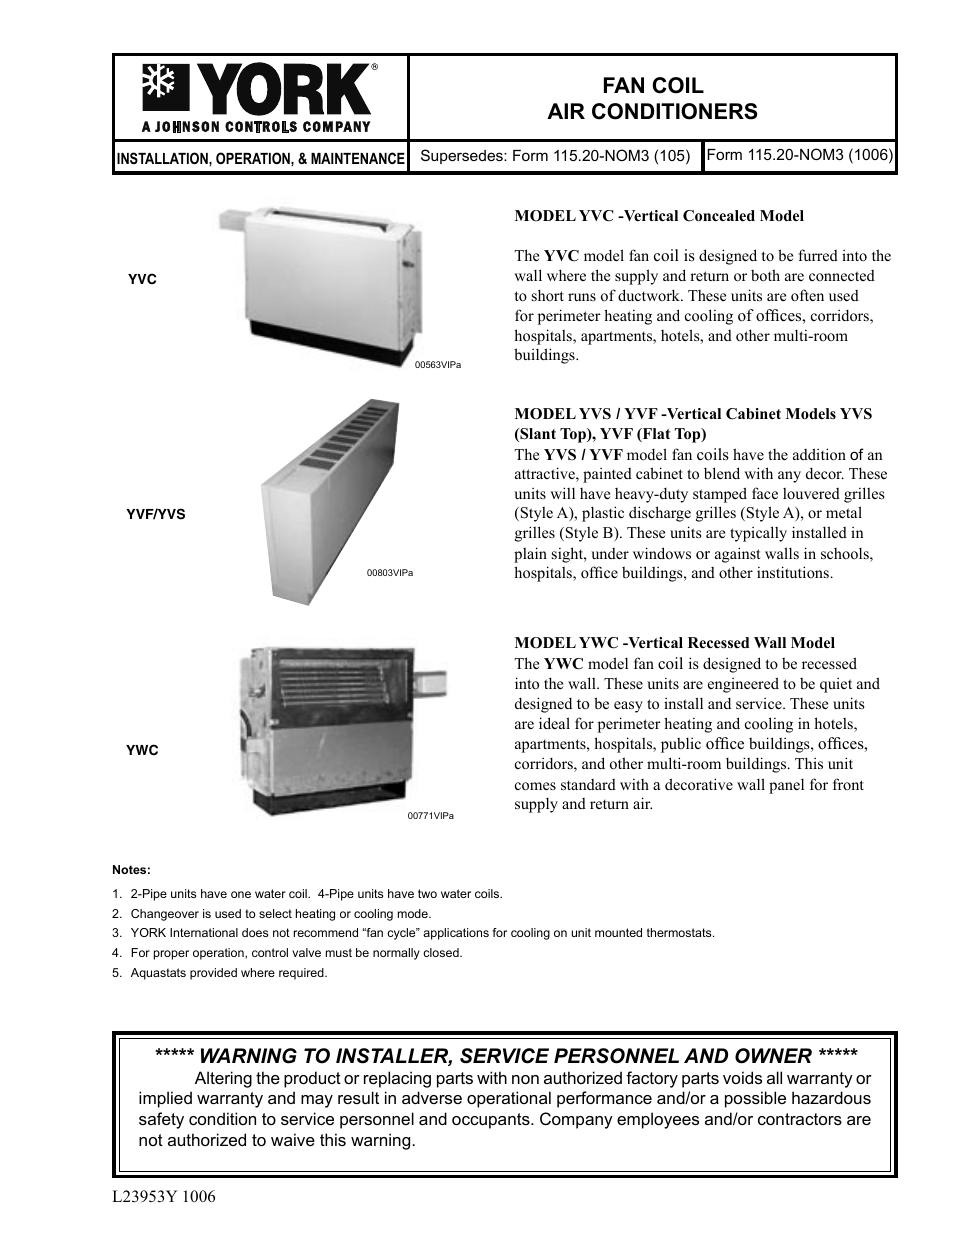 York FAN COIL YWC User Manual | 12 pages | Also for: FAN